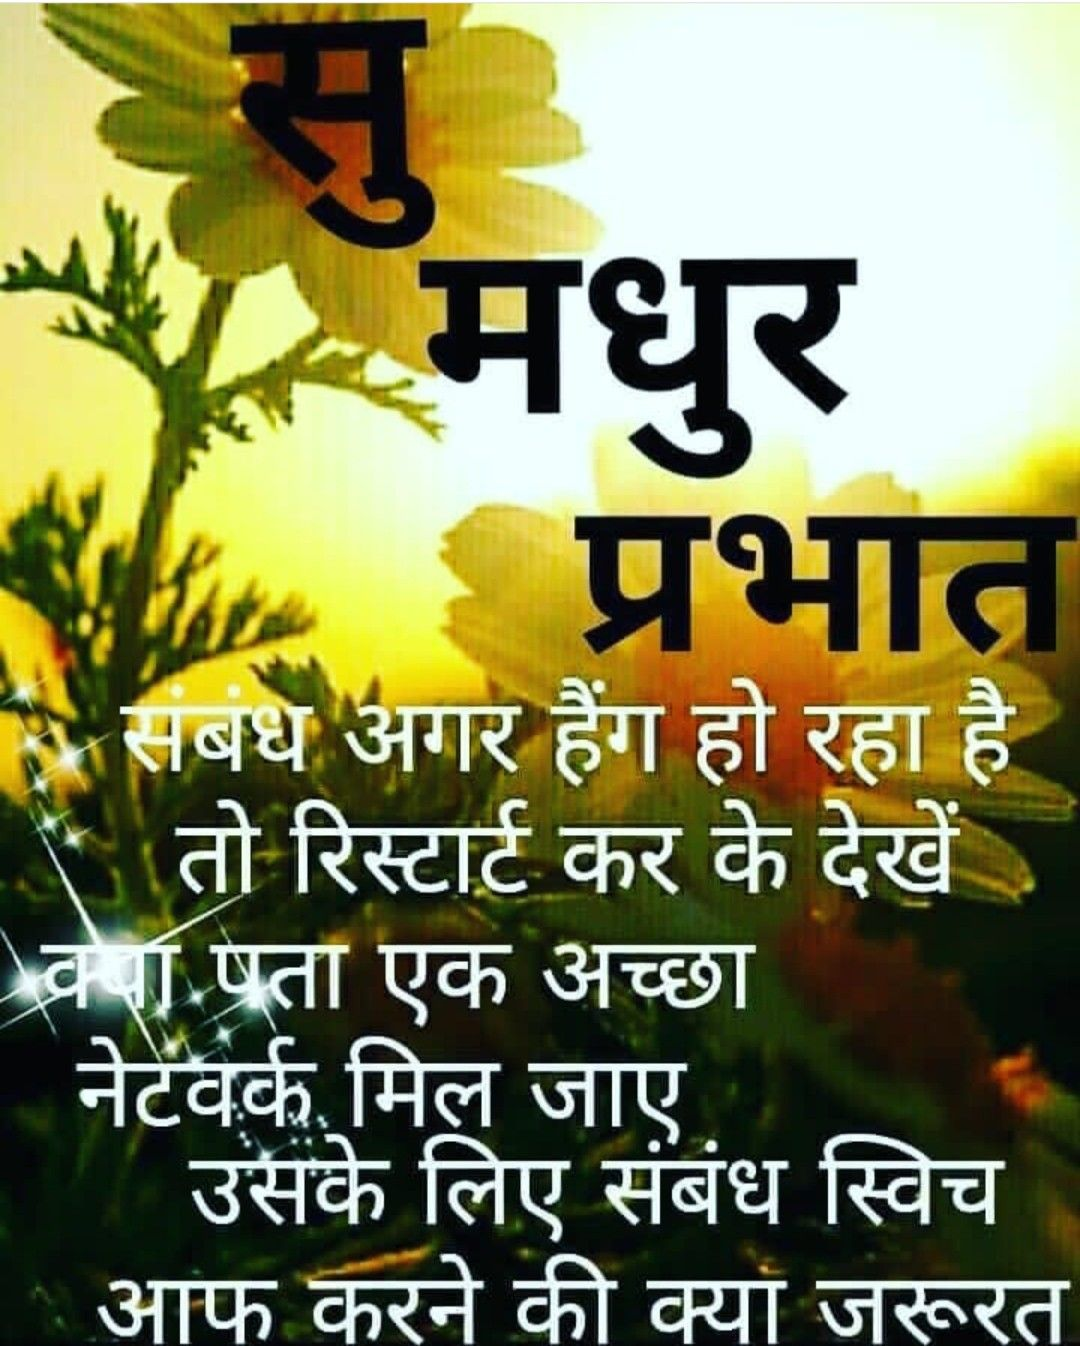 Pin by seema yadav on Good morning wishes in 2020 Good